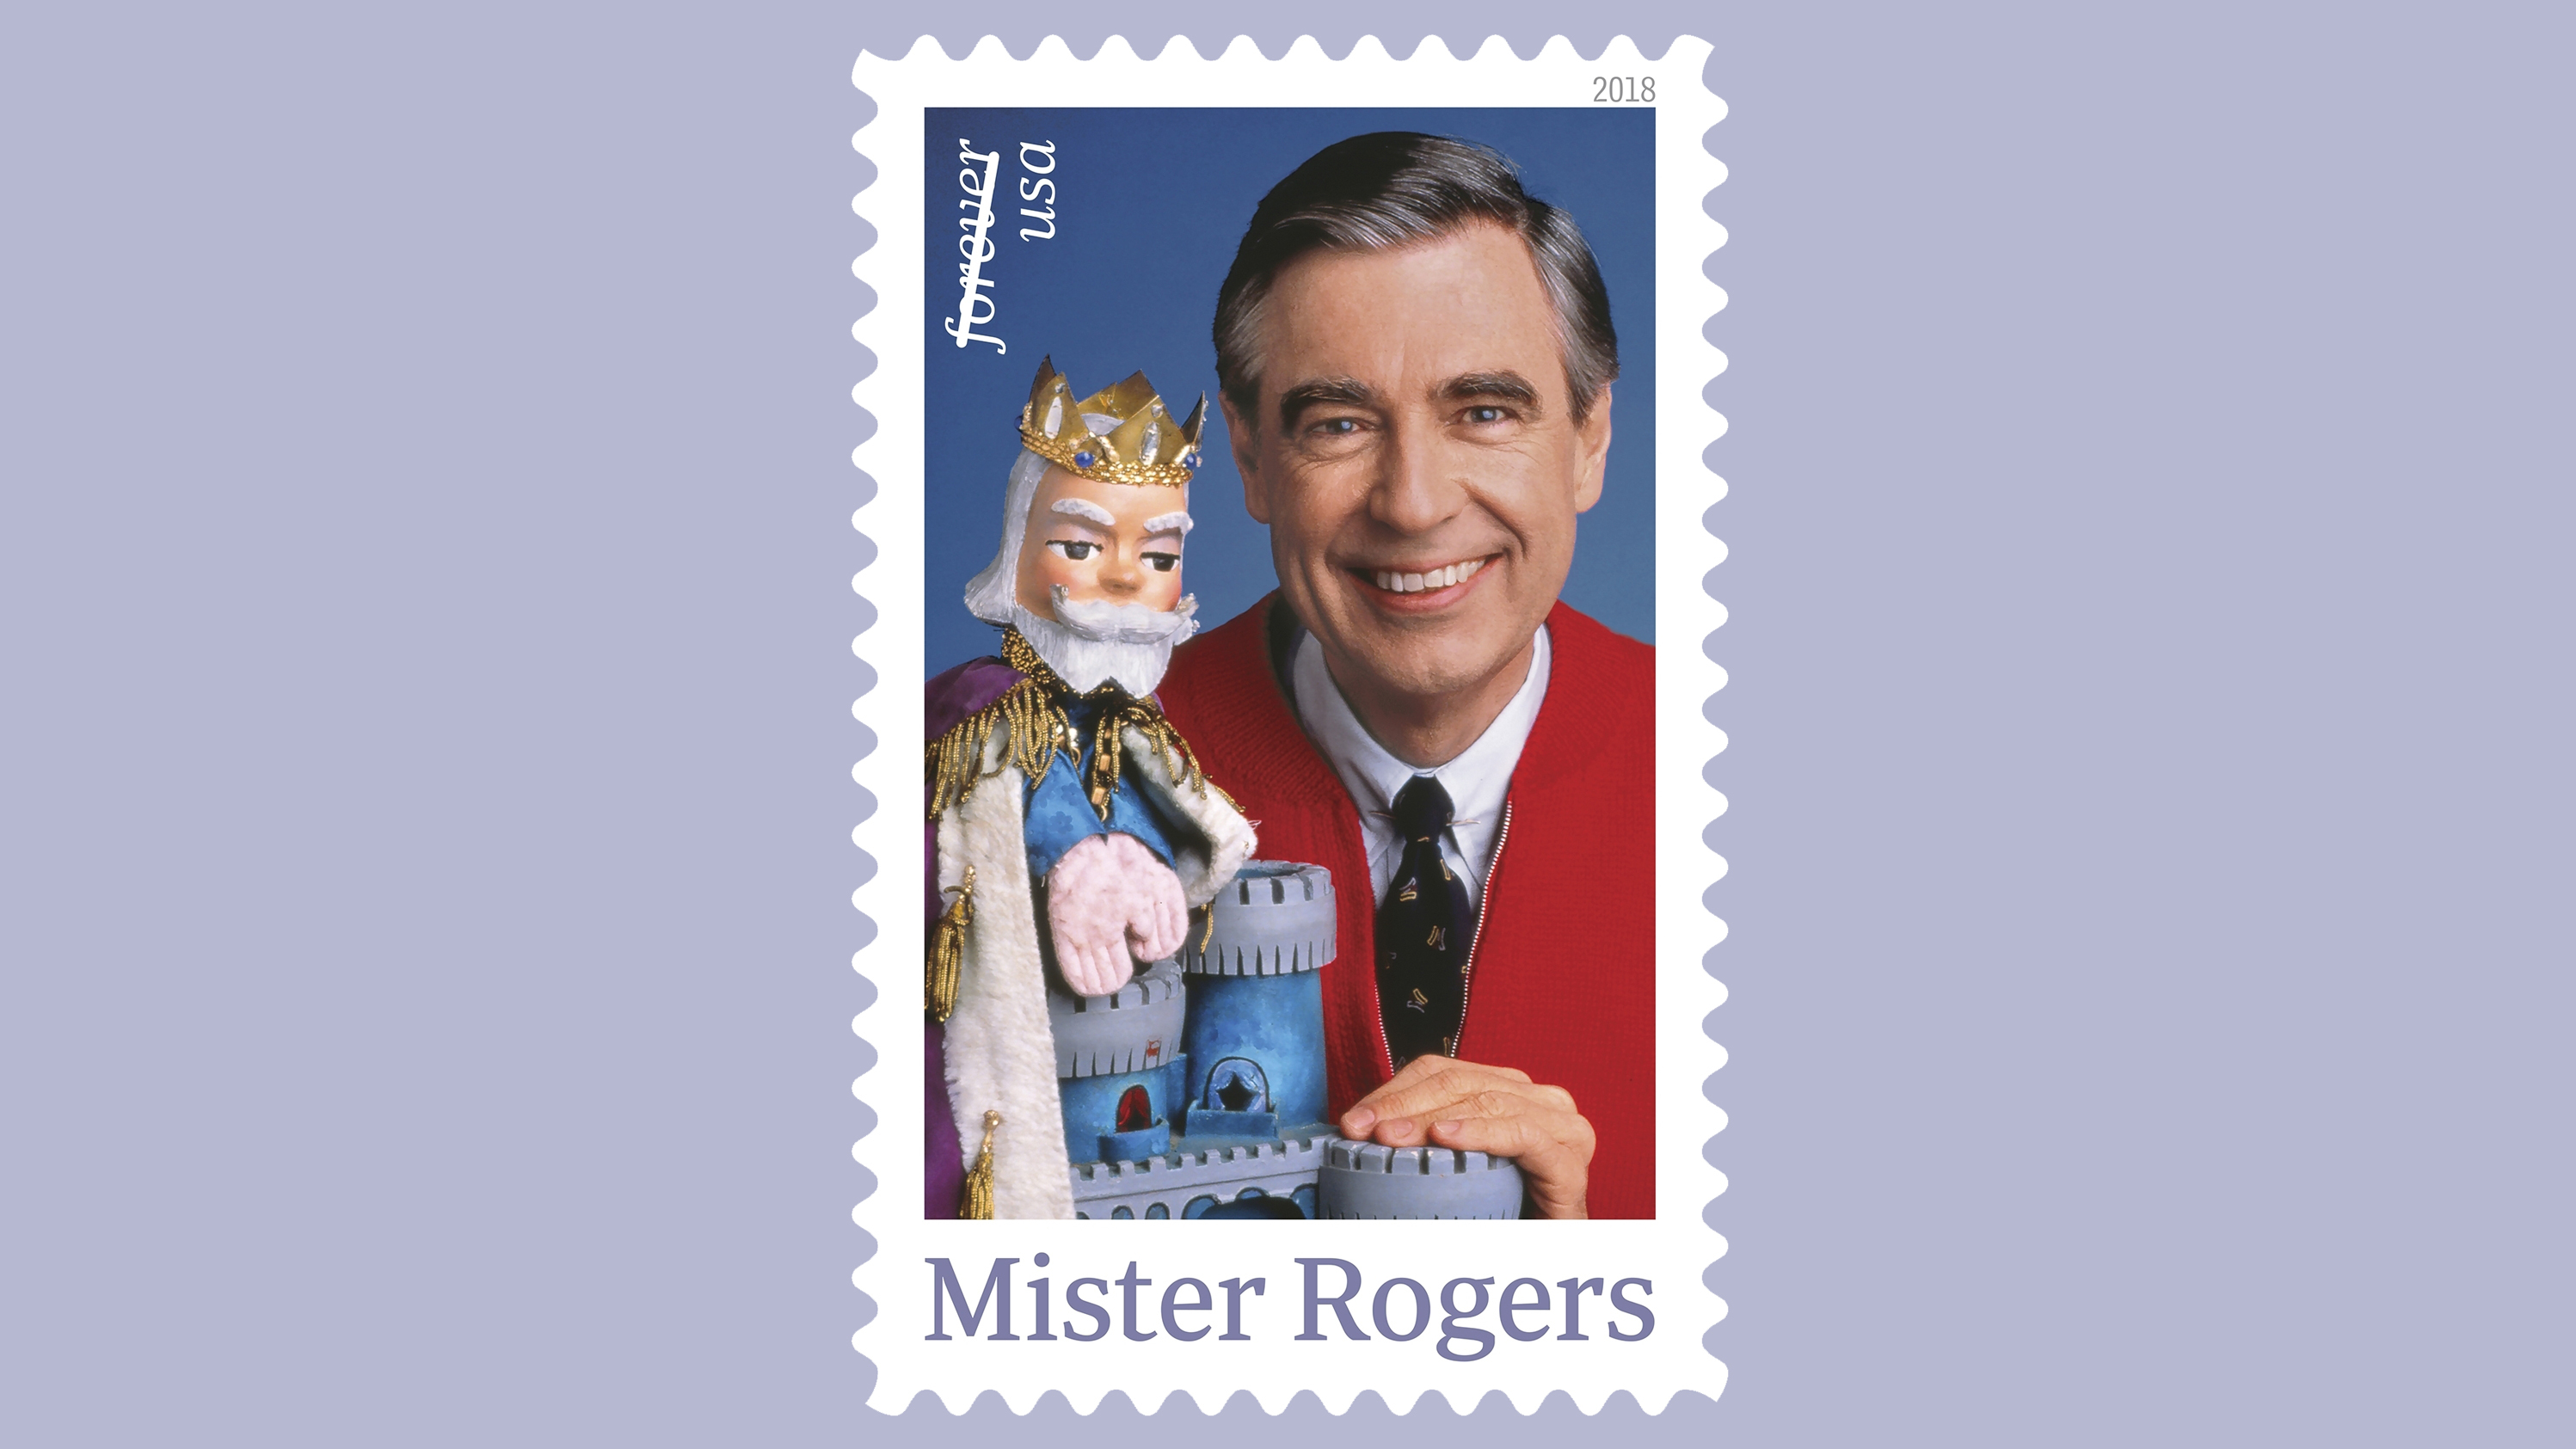 Mister Rogers Is Coming Back To Your Neighborhood On A Stamp Kpbs